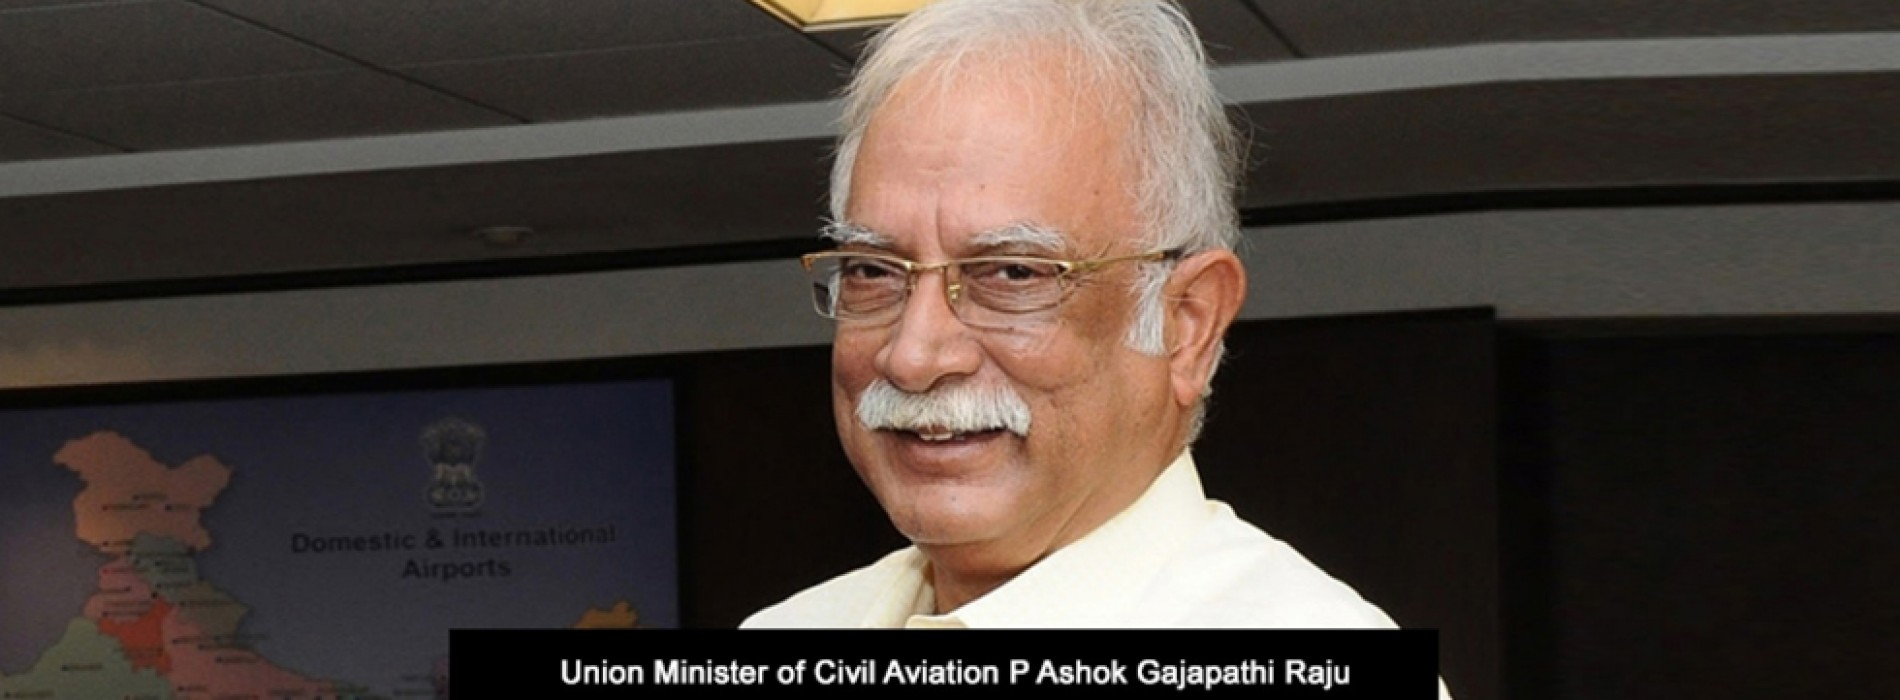 9 proposals to change airport names being considered: Raju